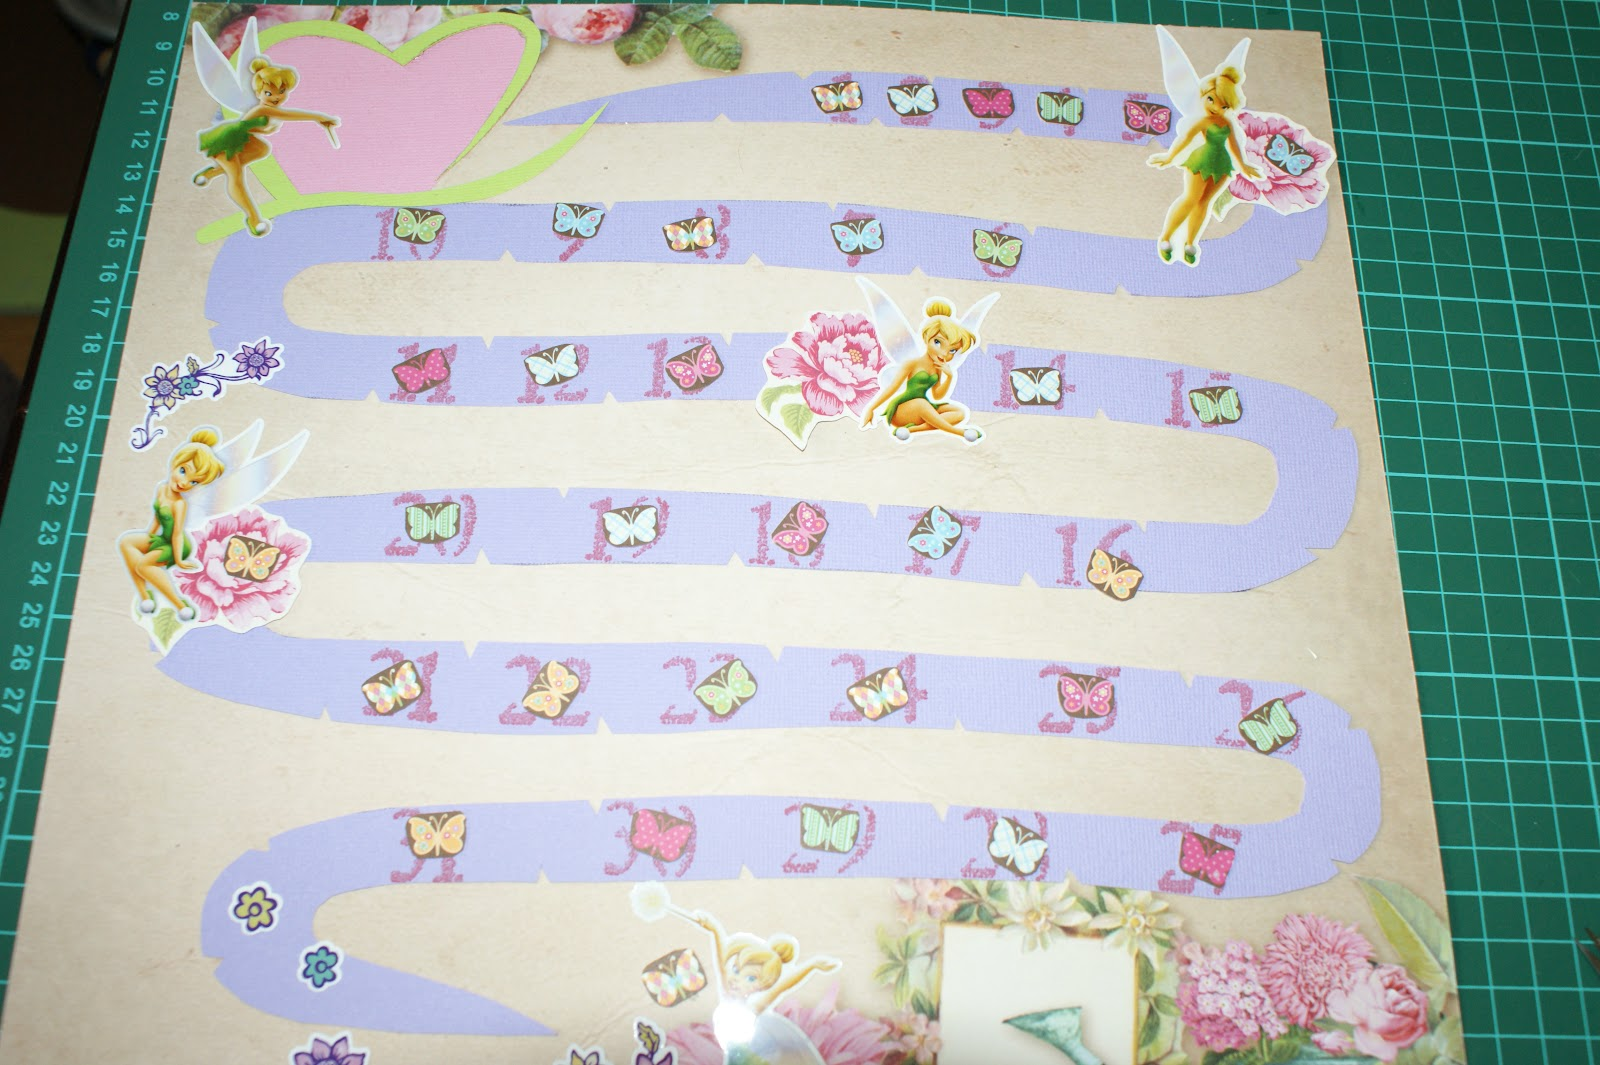 colorful hobbies  diy  potty training chart